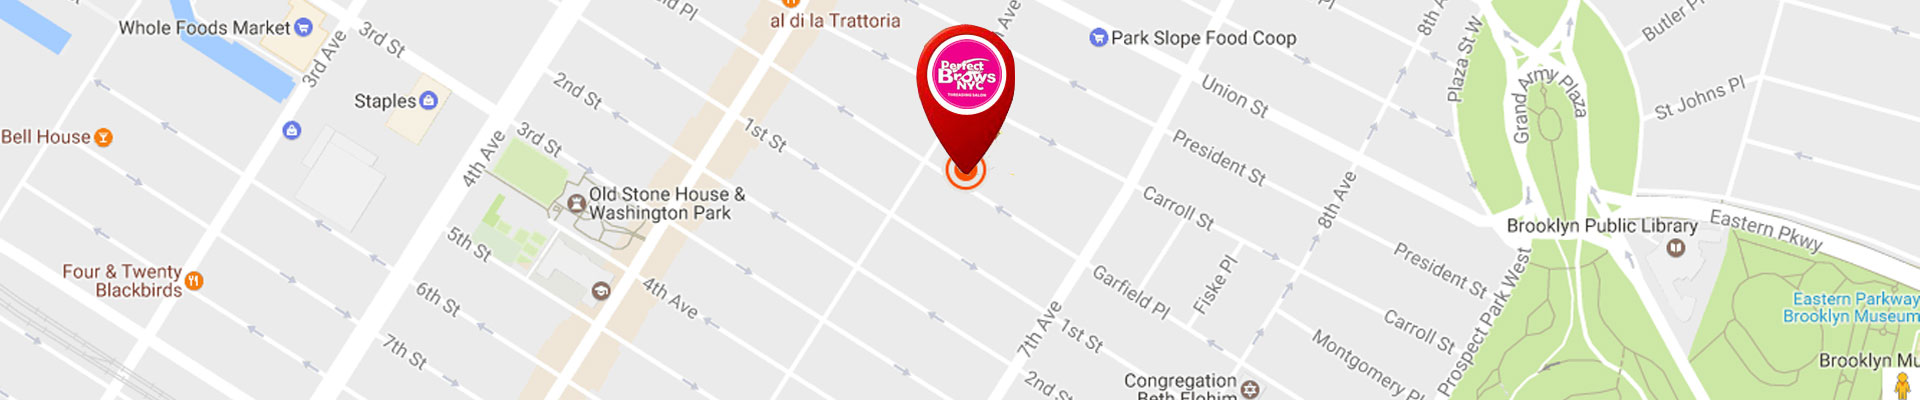 Find Nearest Perfect Brows Store   New York